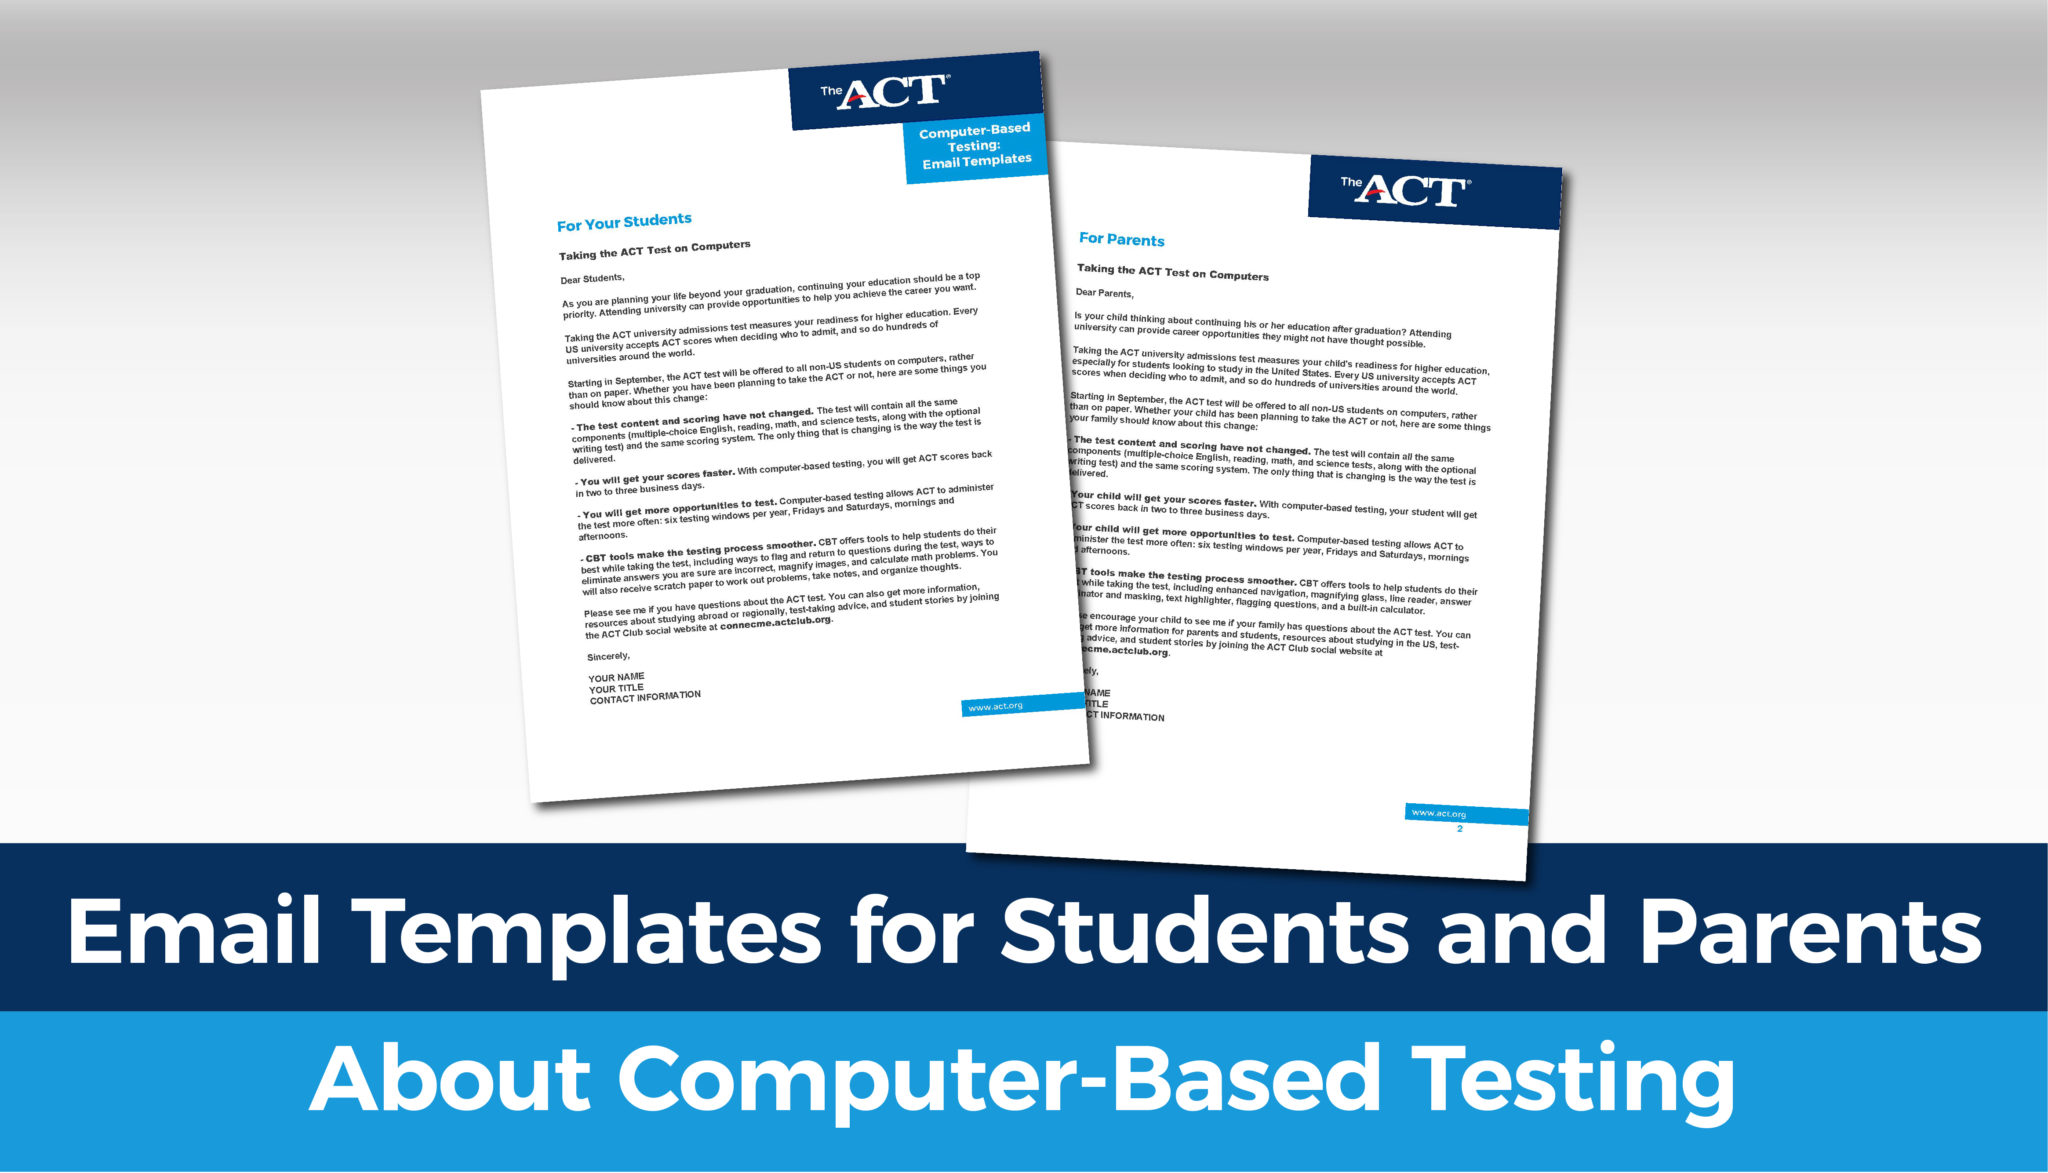 Email Templates for Students and Parents about Comuter-based Testing